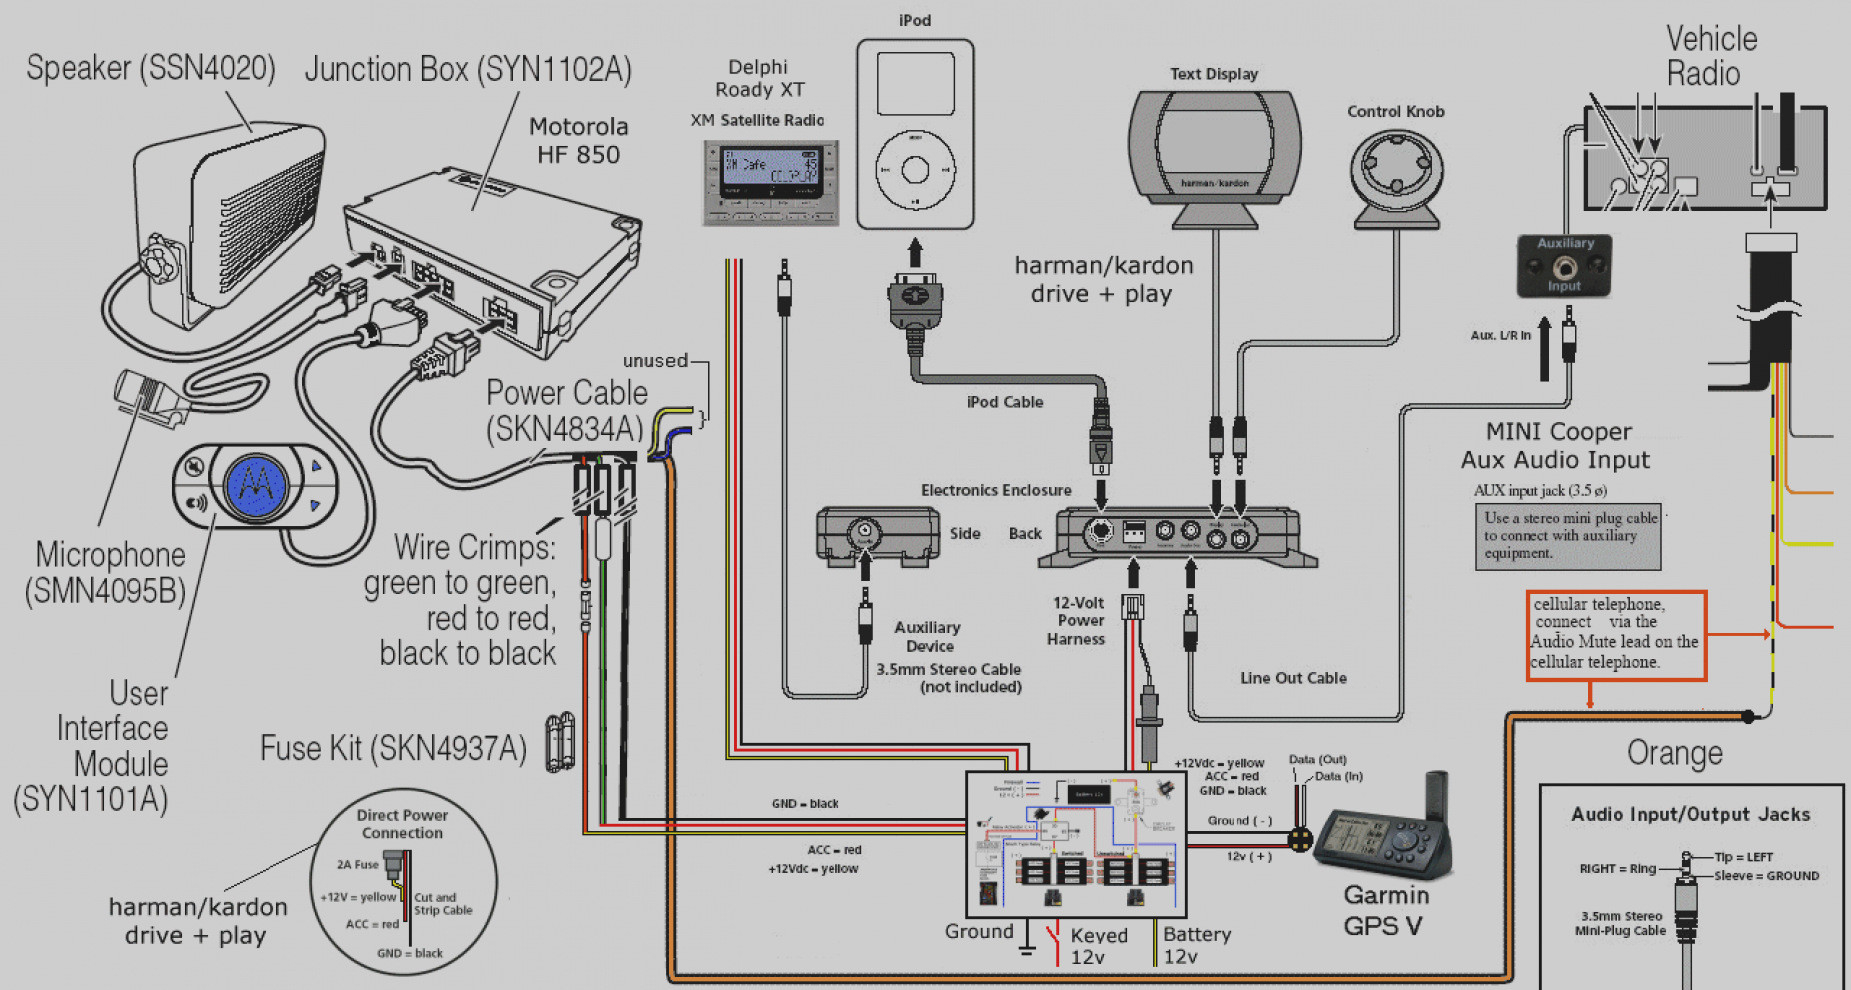 hight resolution of 5mm stereo jack diagram free download wiring diagram schematic bluetooth wiring diagram 3 5mm wiring diagram